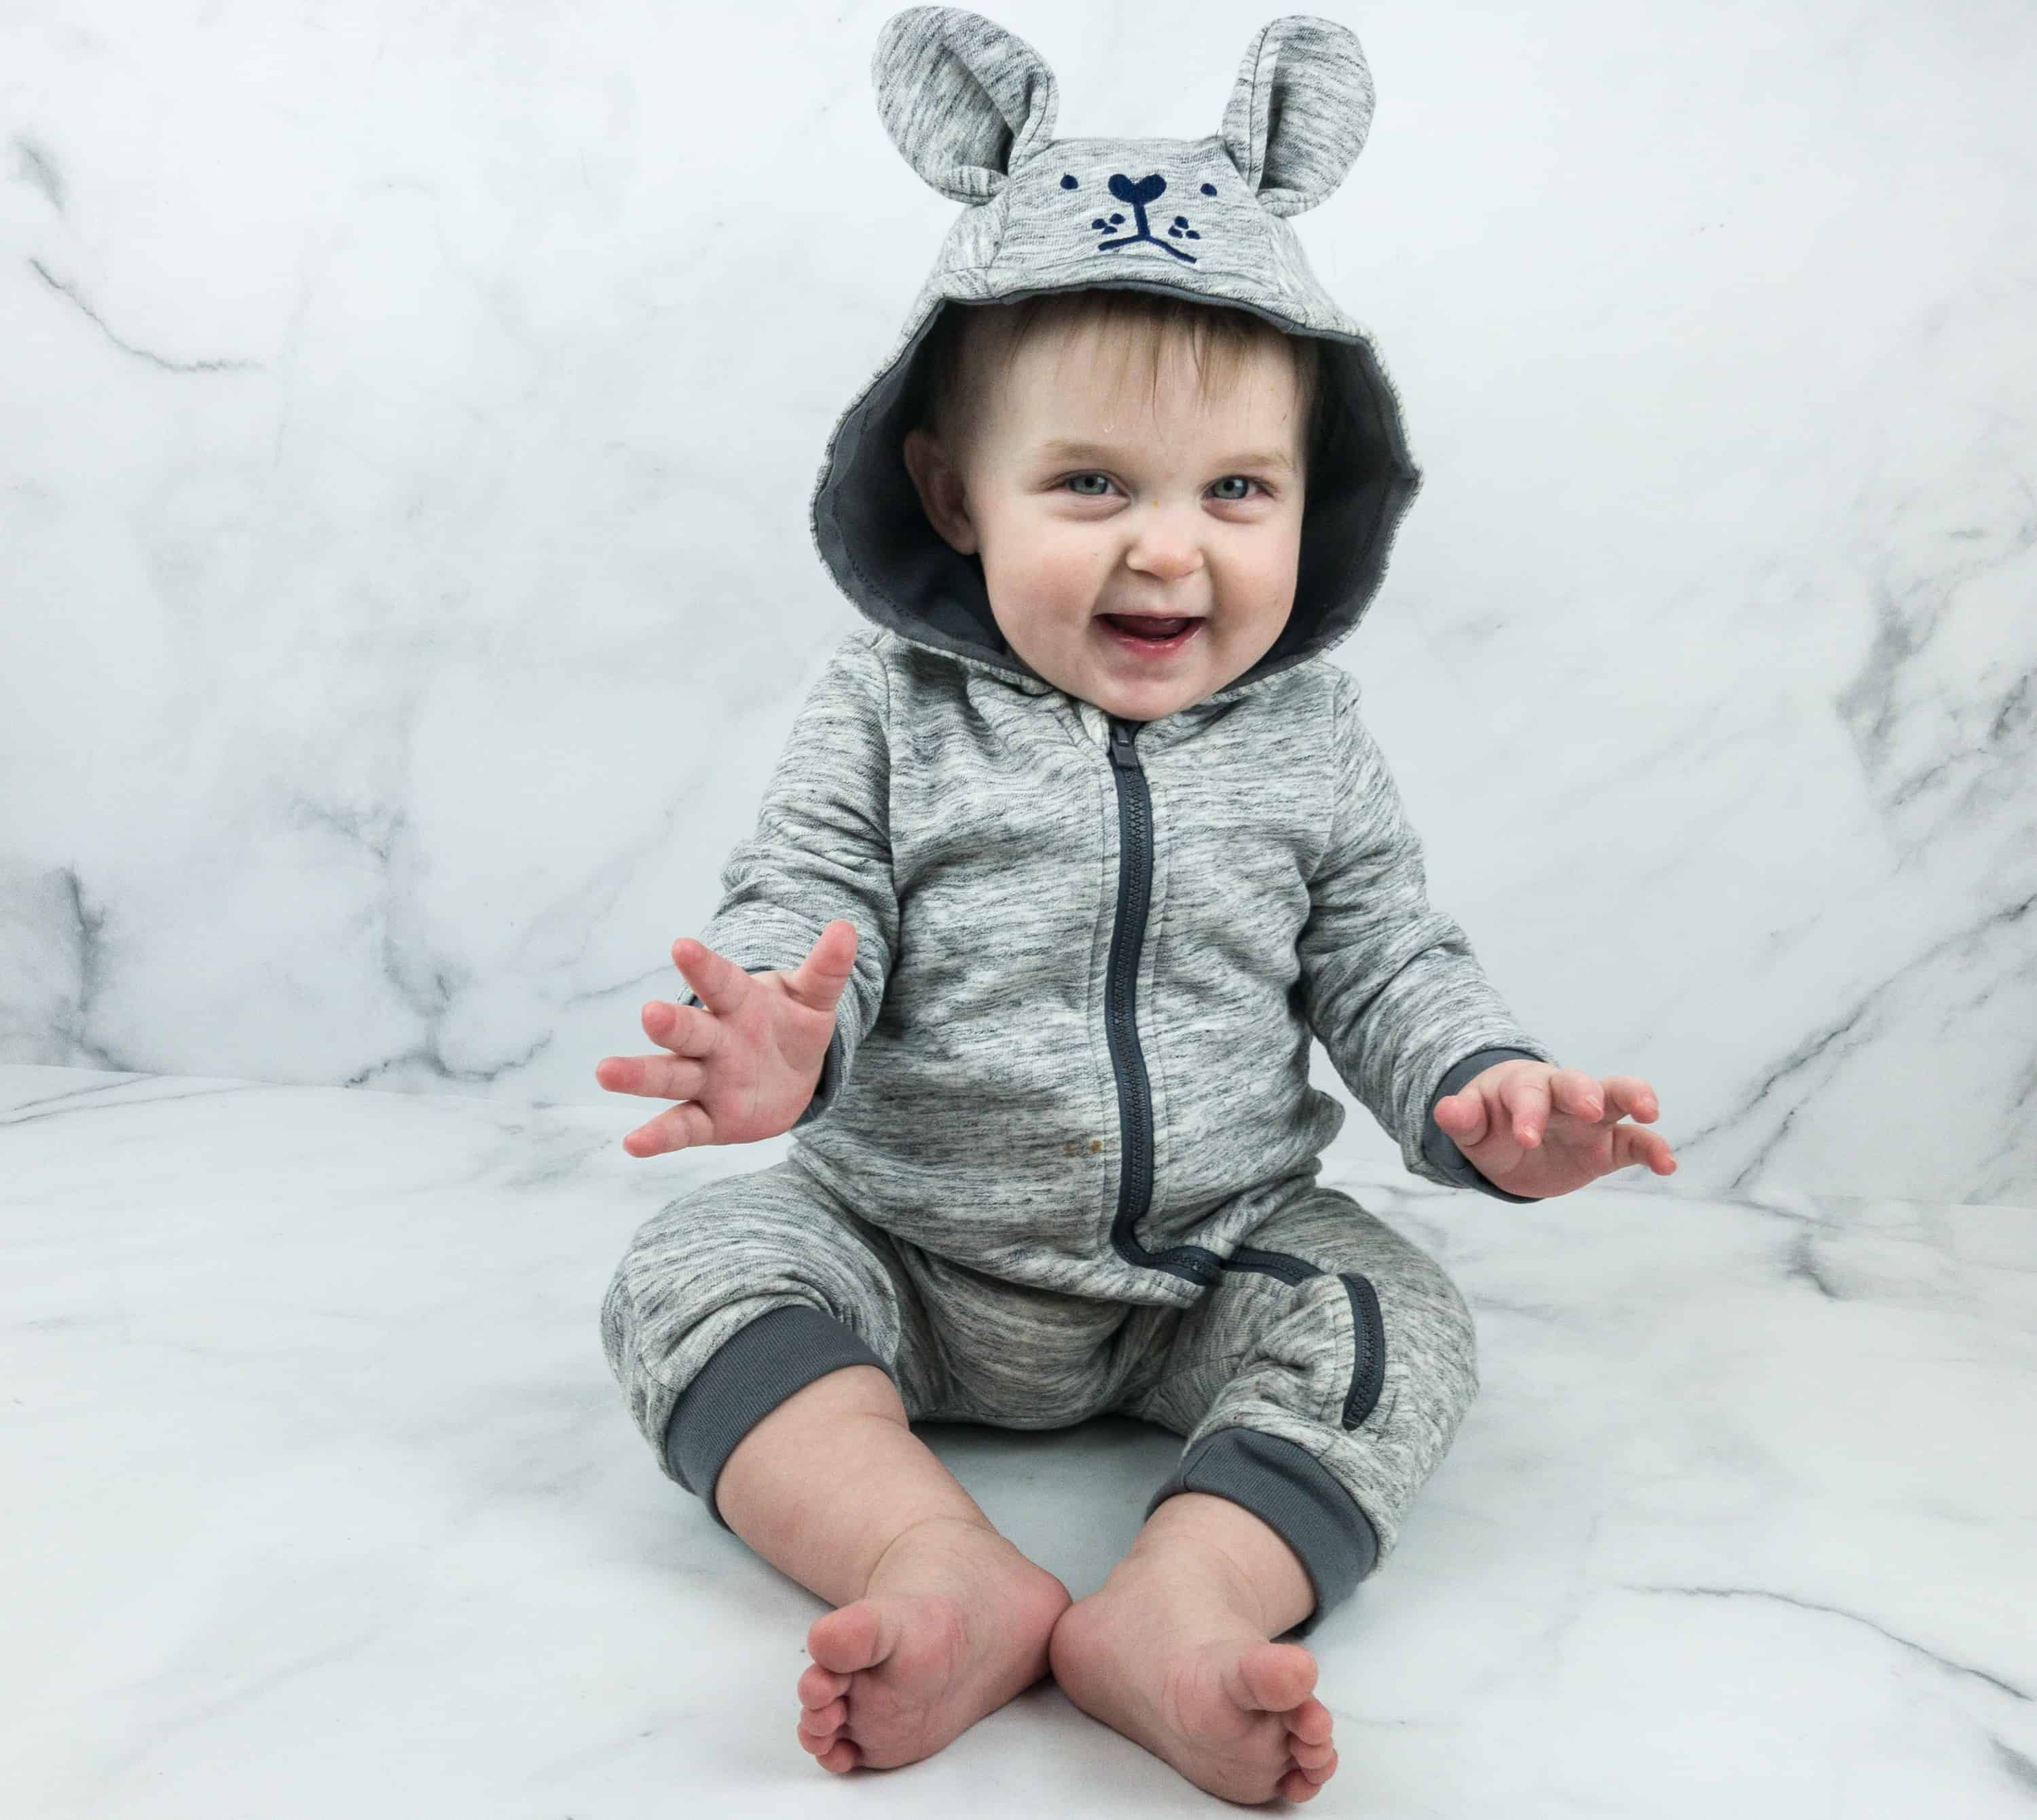 ac455ede7f36 All we need are some socks and shoes and we re ready to enjoy the outdoors! Target s  Cat and Jack Baby Outfit Box ...